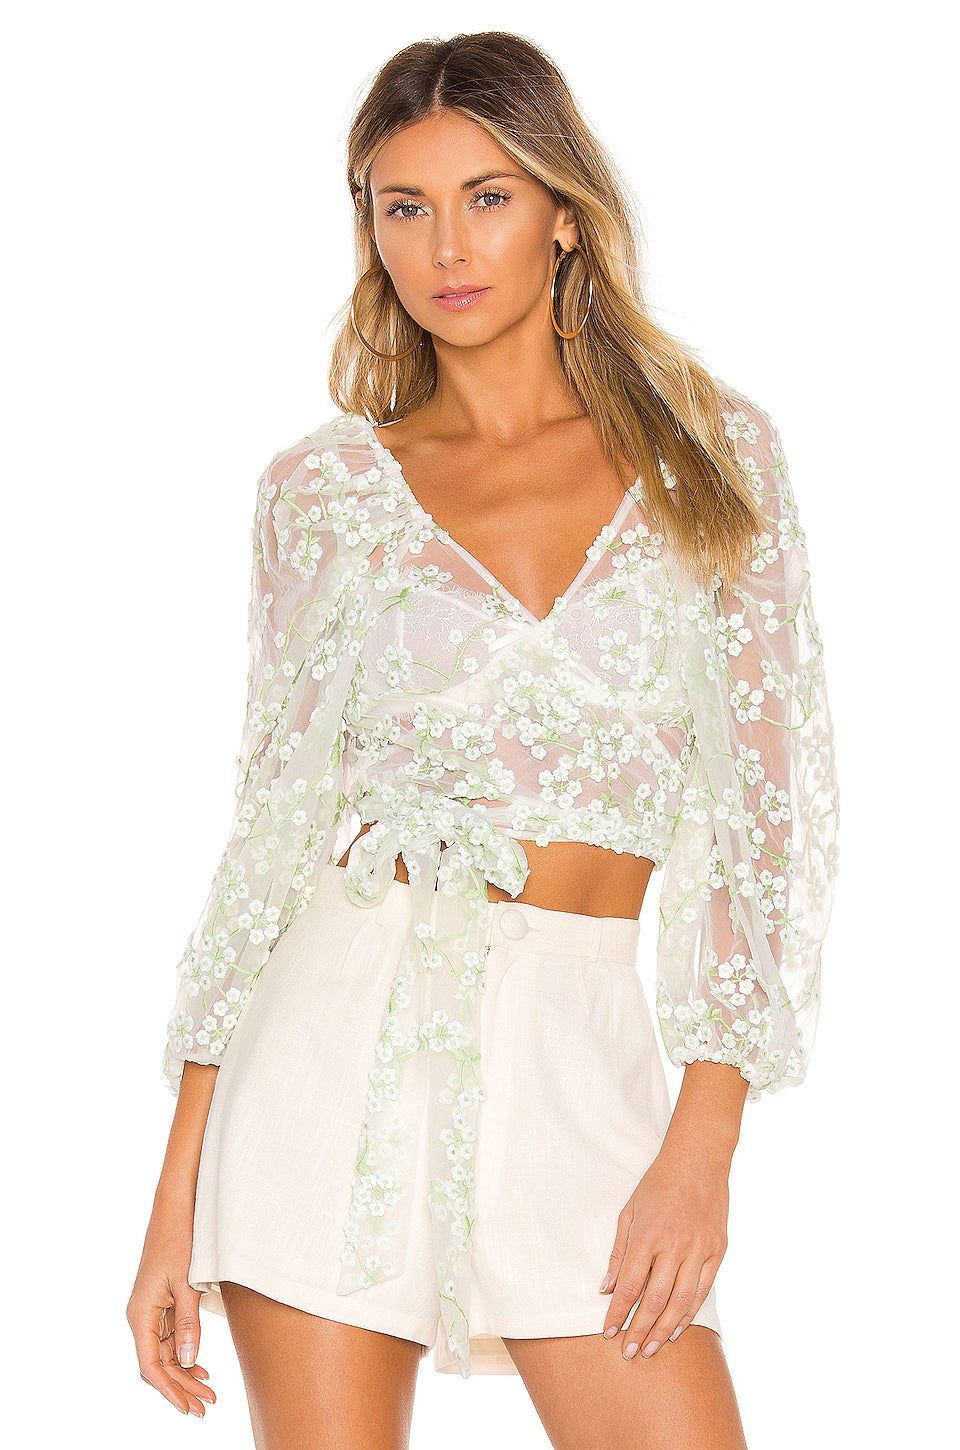 407f1ae9f33 For Love and Lemons Eclair Crop Top – Bliss Bandits